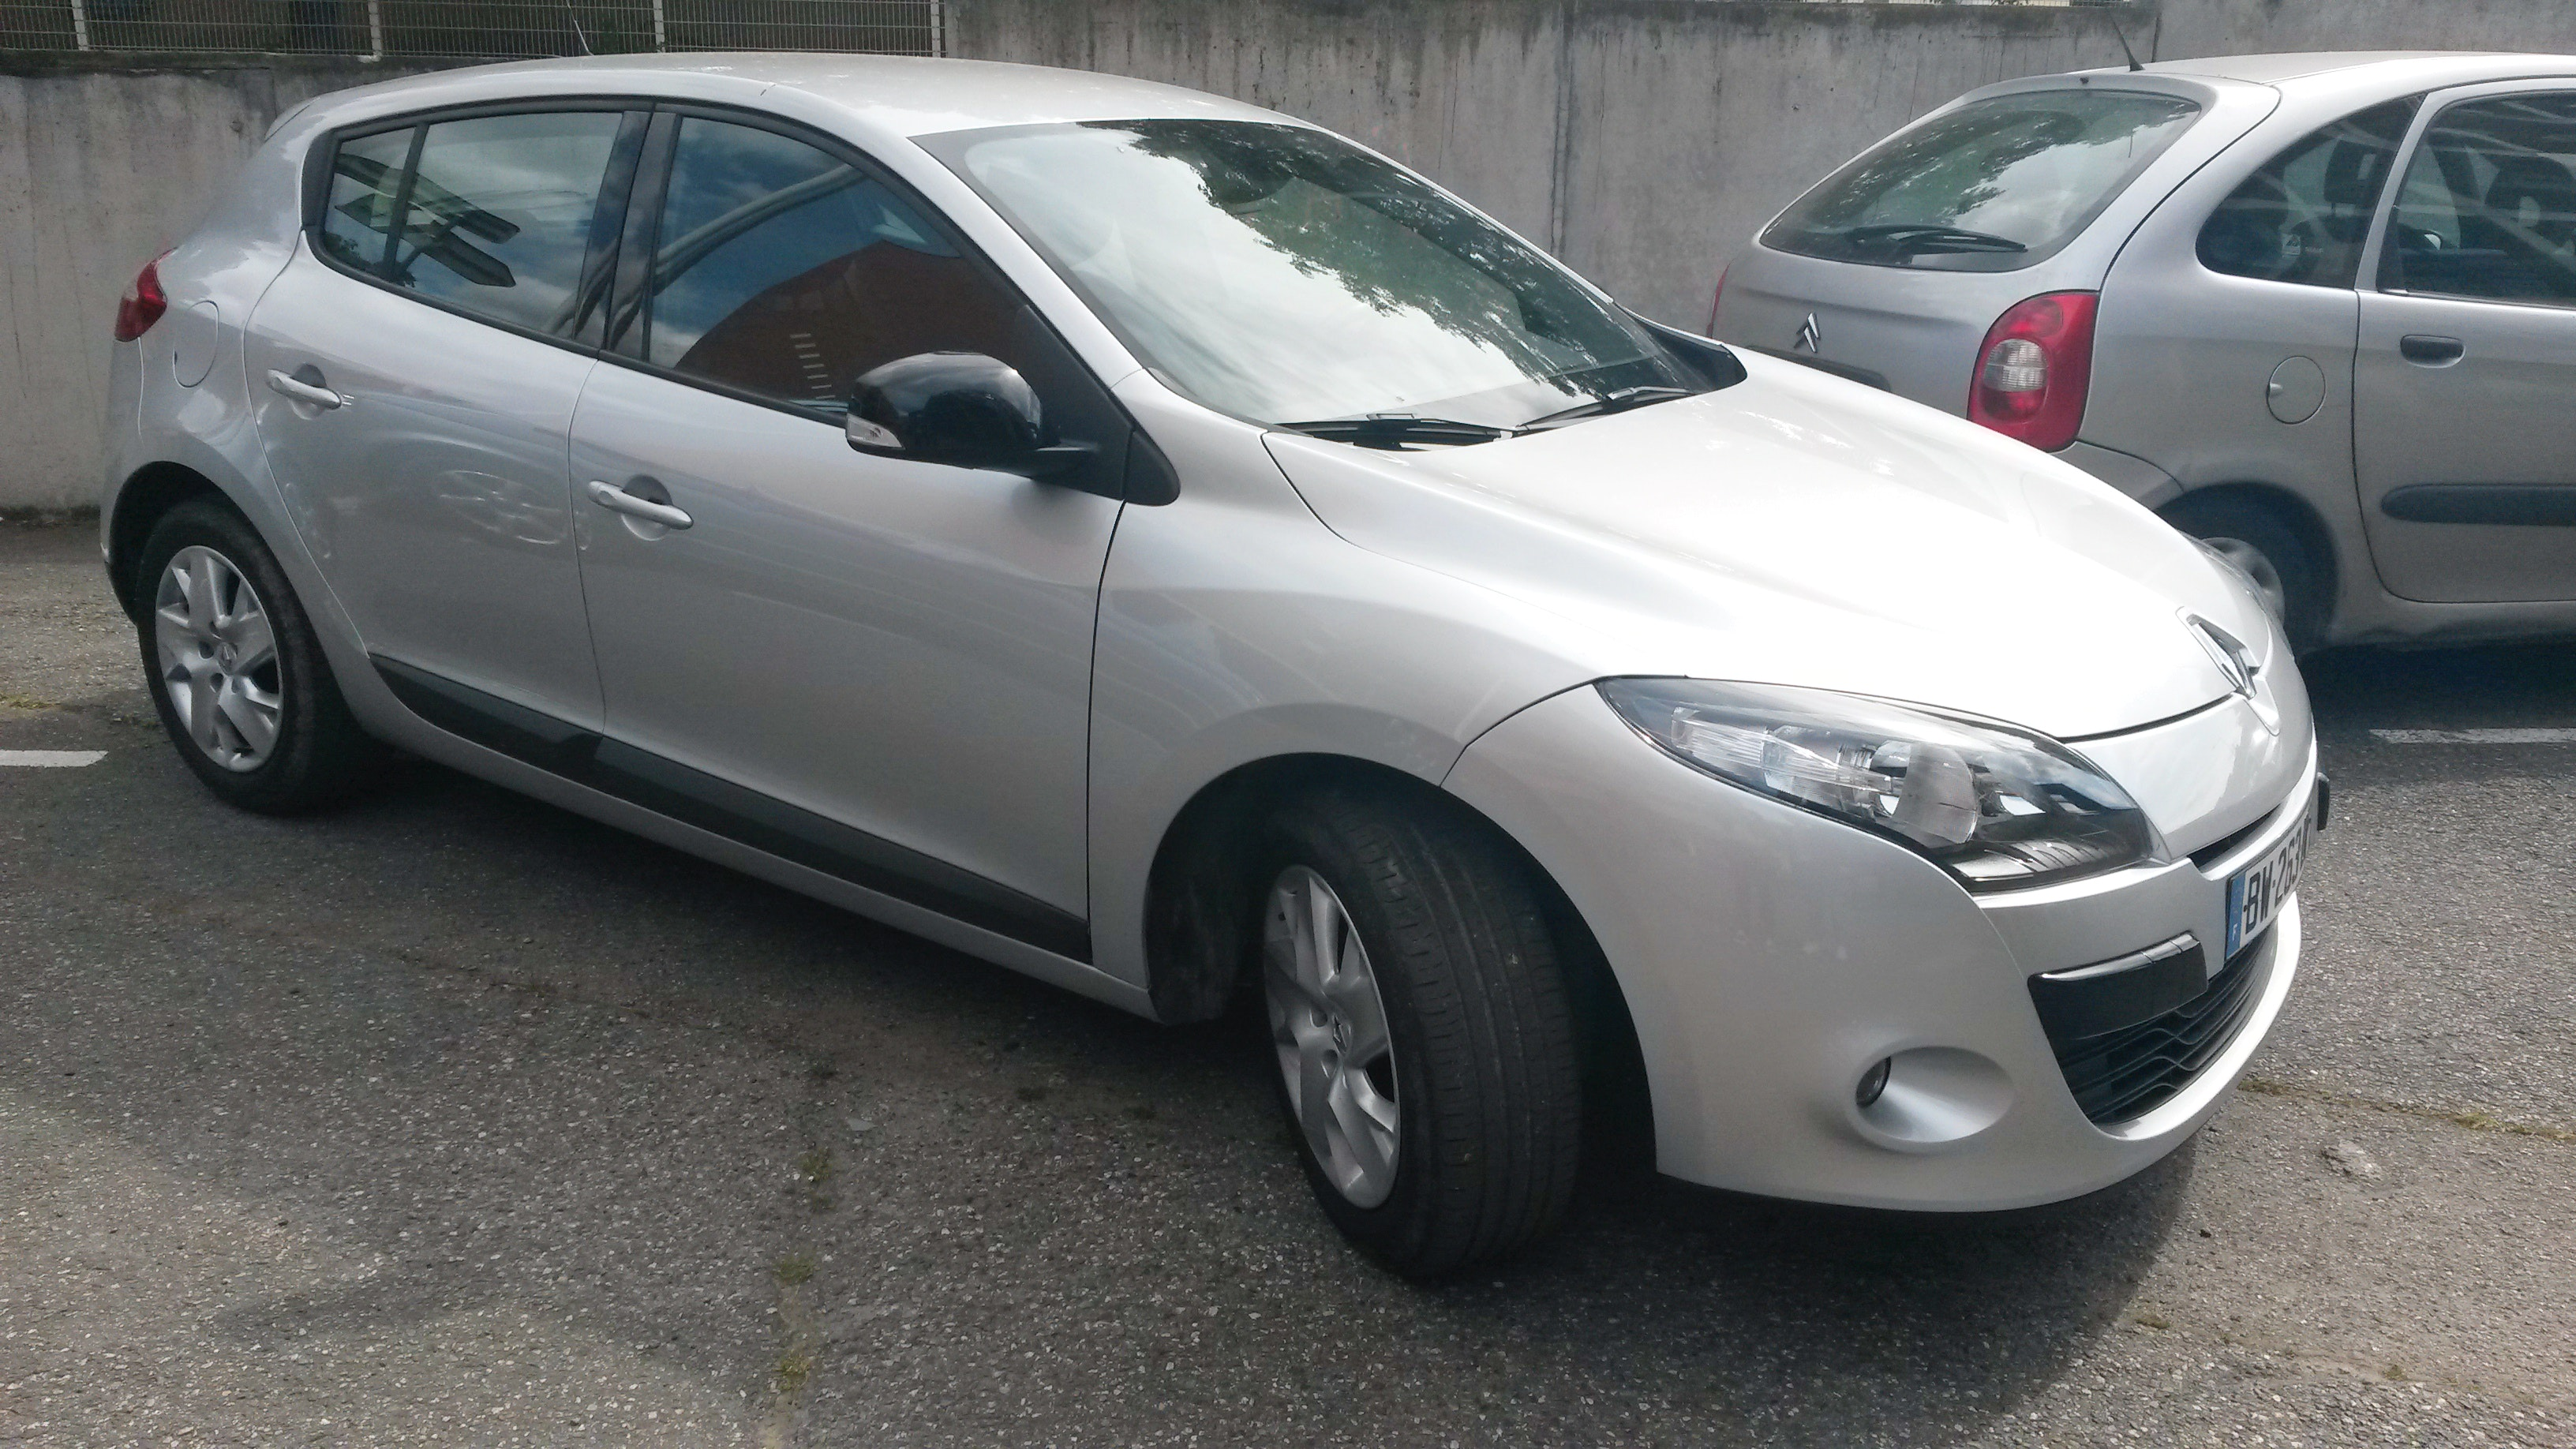 RENAULT MEGANE III DCI 110 CV EXPRESSION CHAMPION 2011, 2011, Diesel - Berline Toulouse (31)